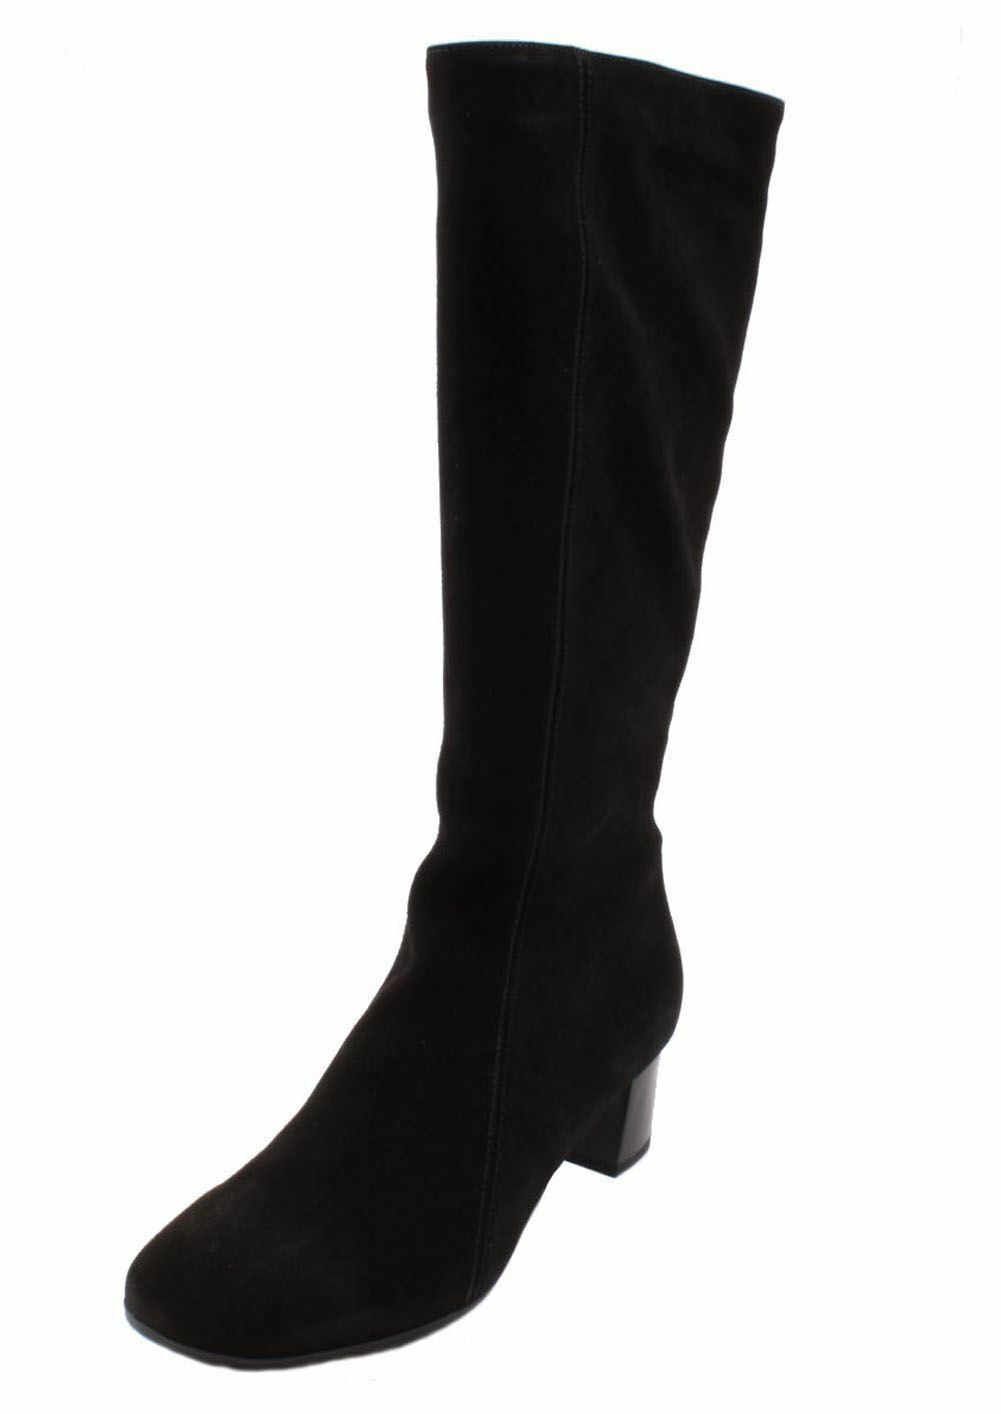 La Canadienne Janice Womens Black Suede Knee High Fashion Boots size 11